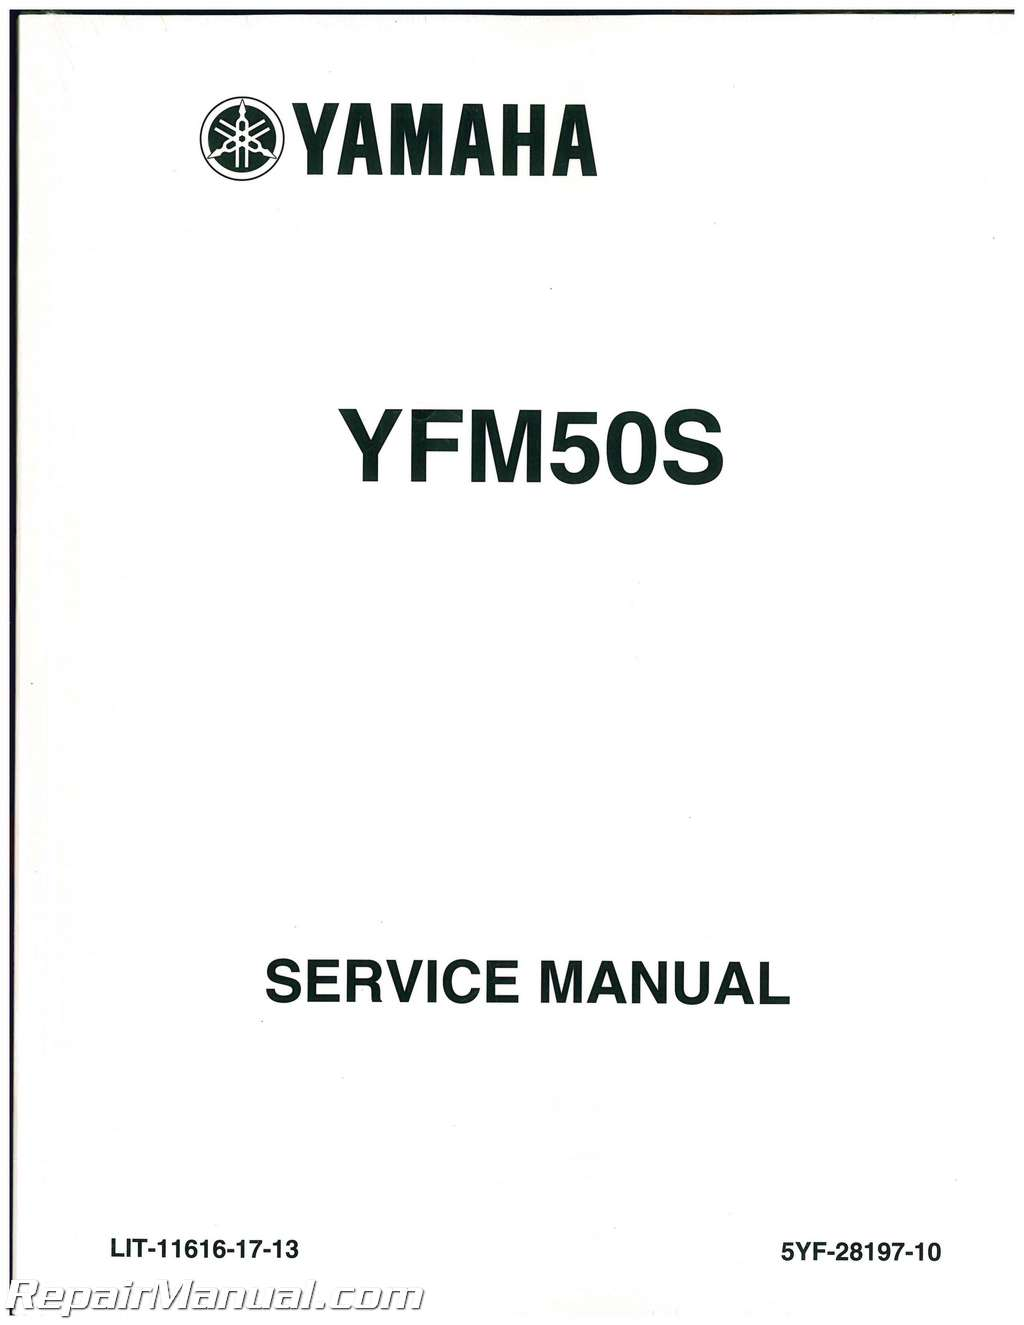 2004-2008 Yamaha YFM50 ATV Raptor Service Manual : LIT